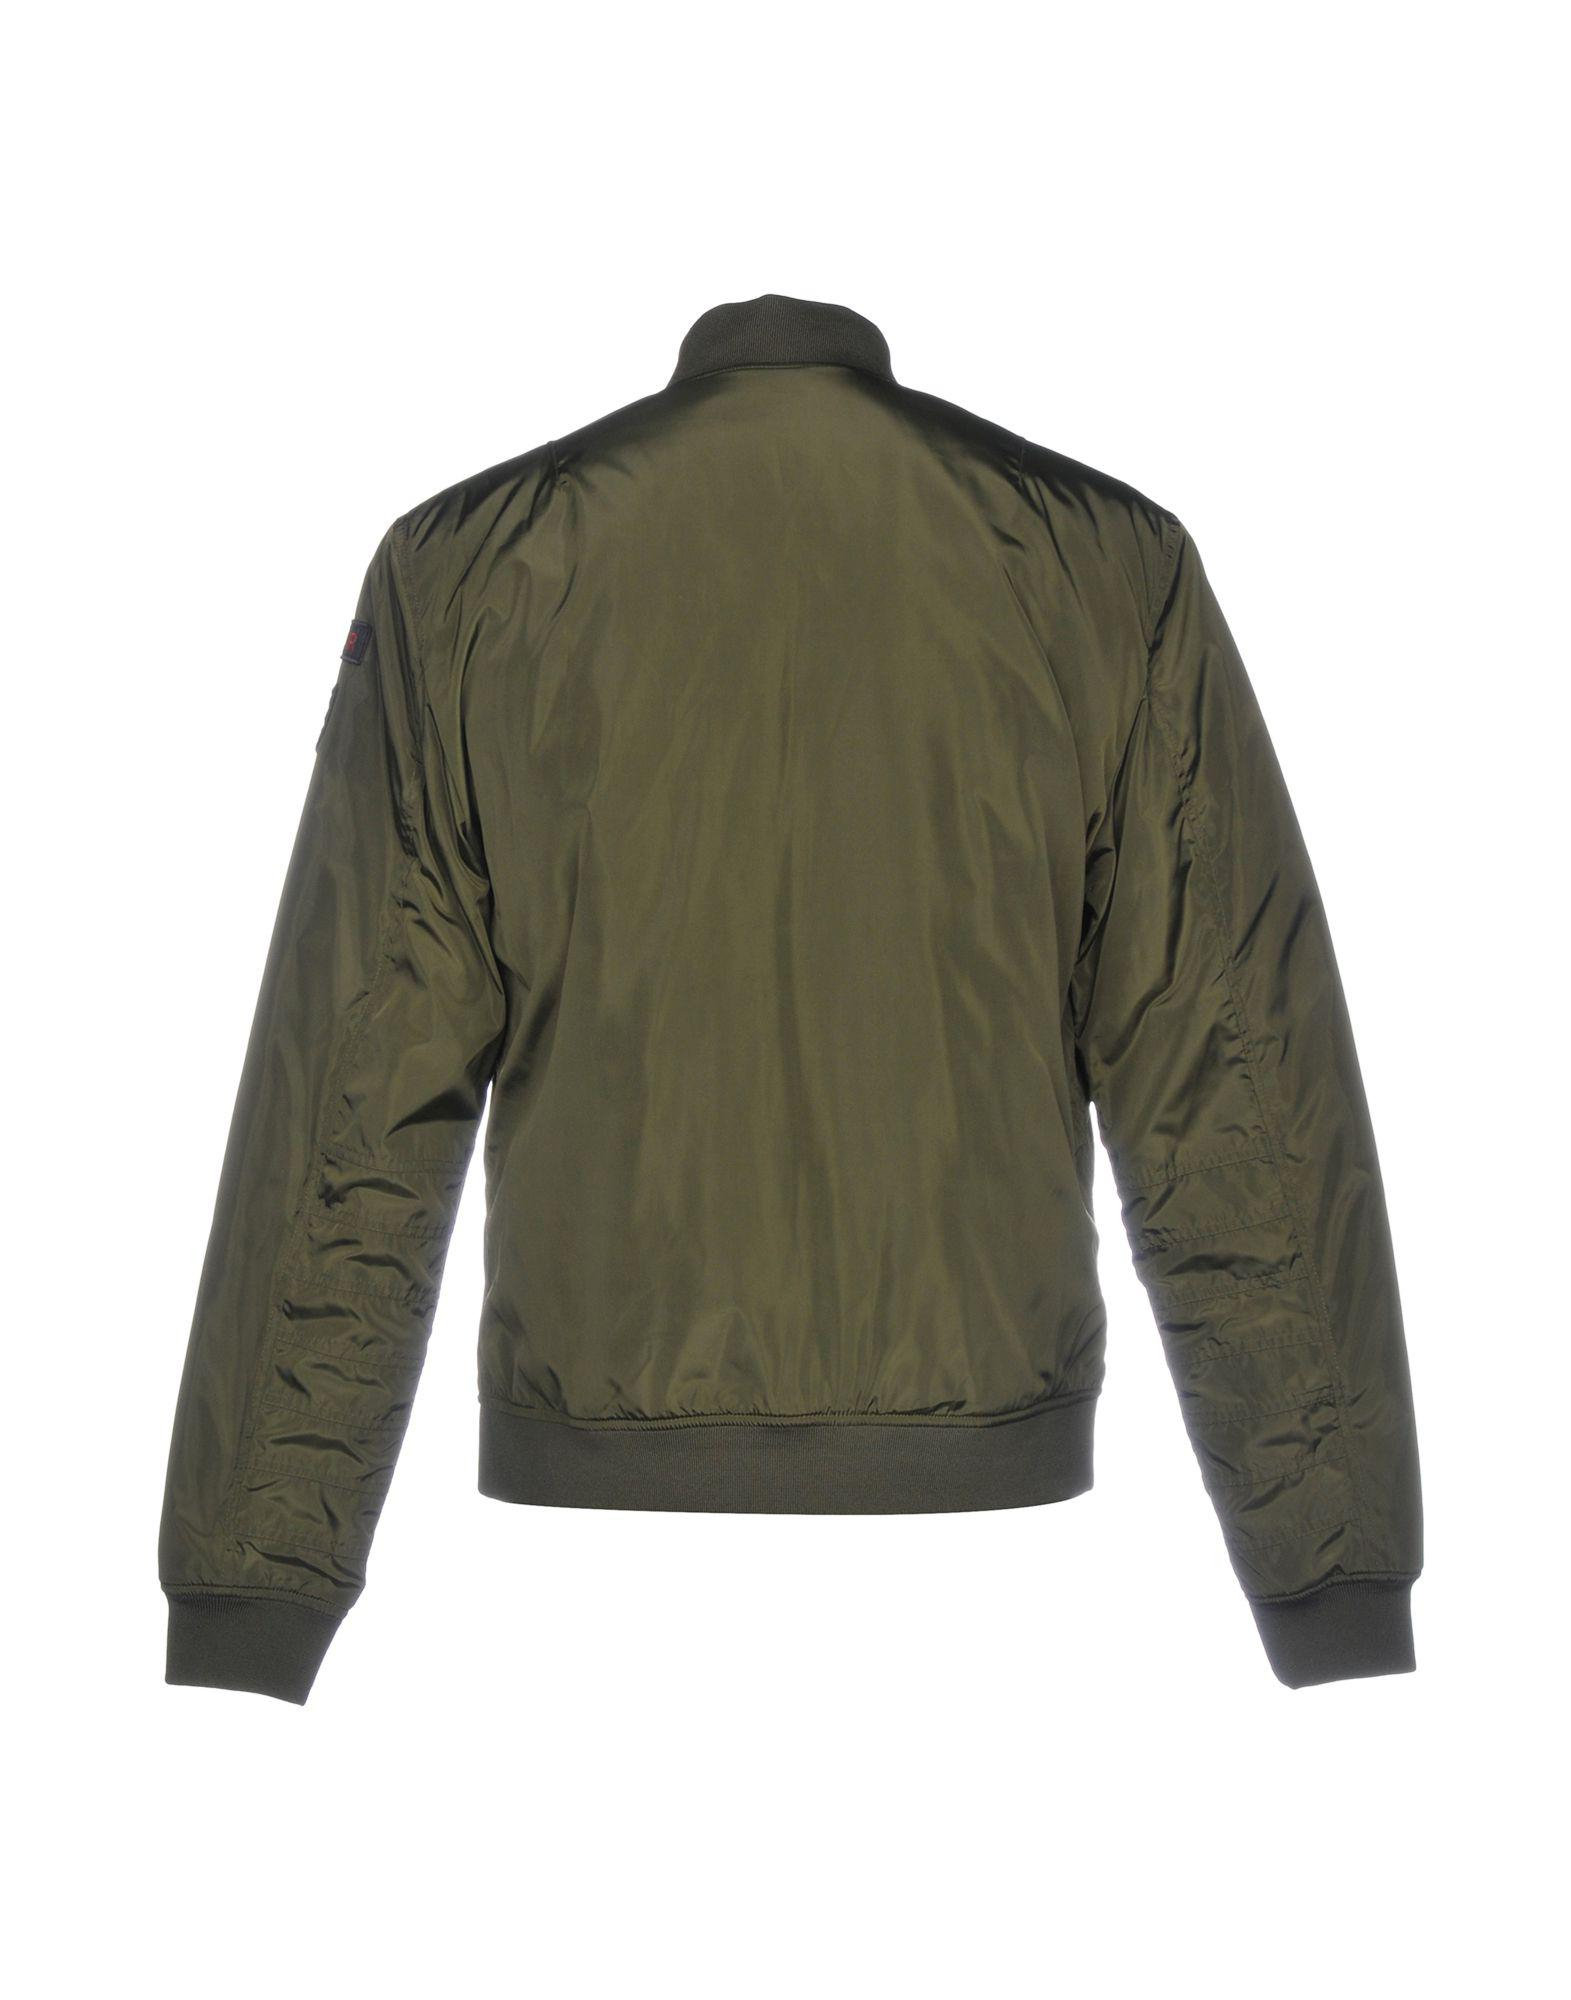 Blend Jacket in Military Green (Green) for Men